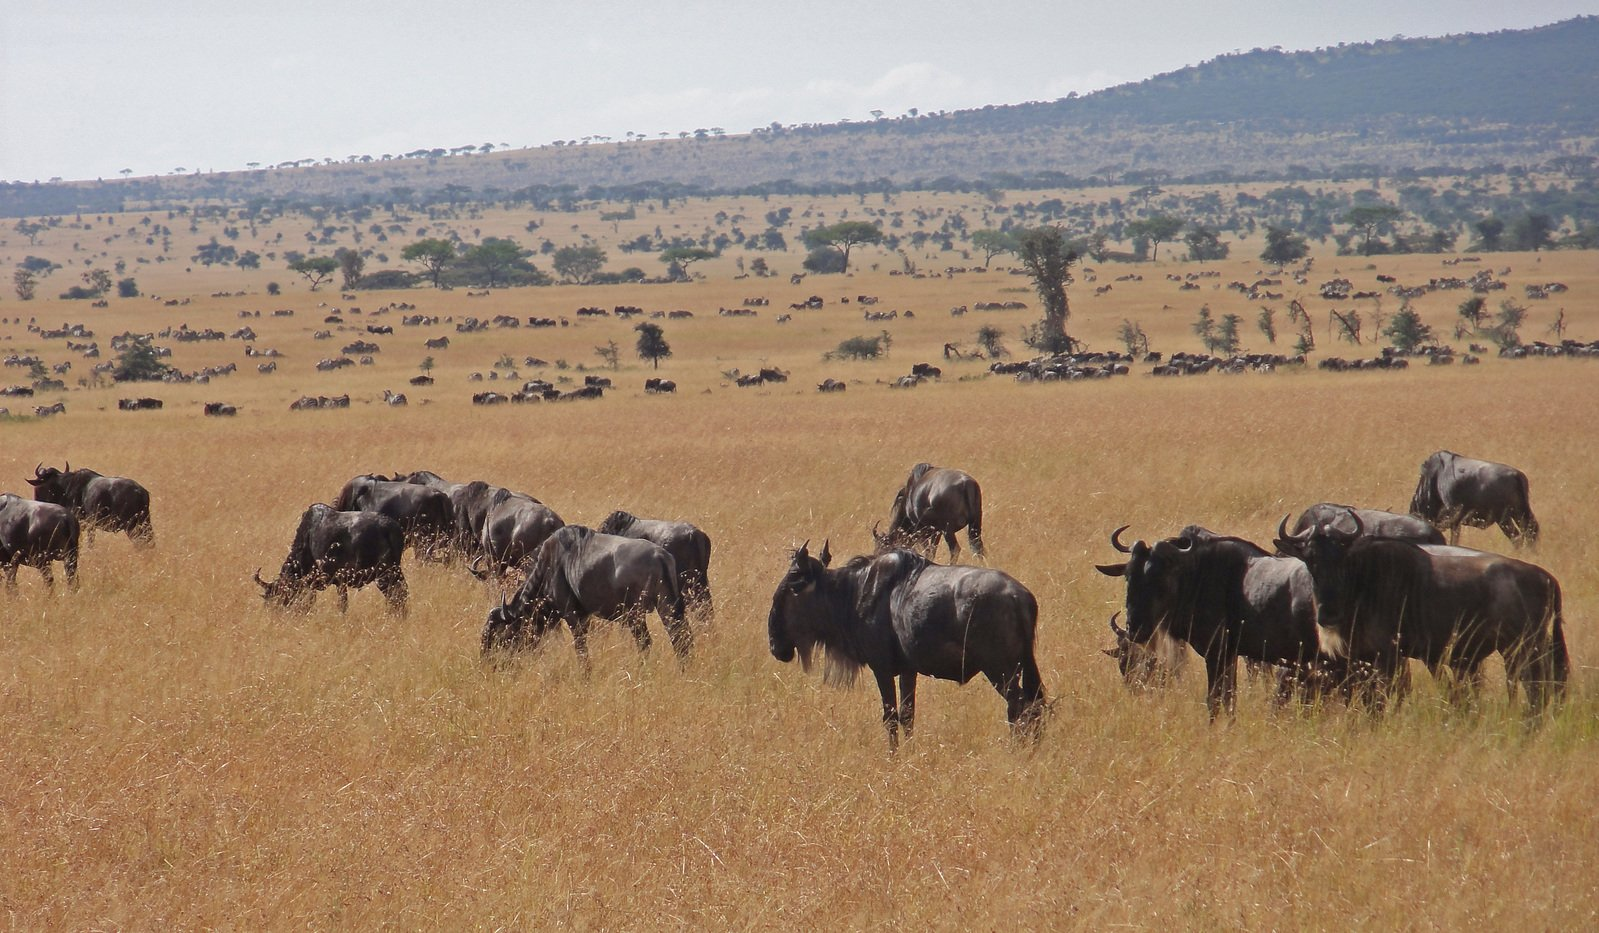 Pack of gnu in the wild